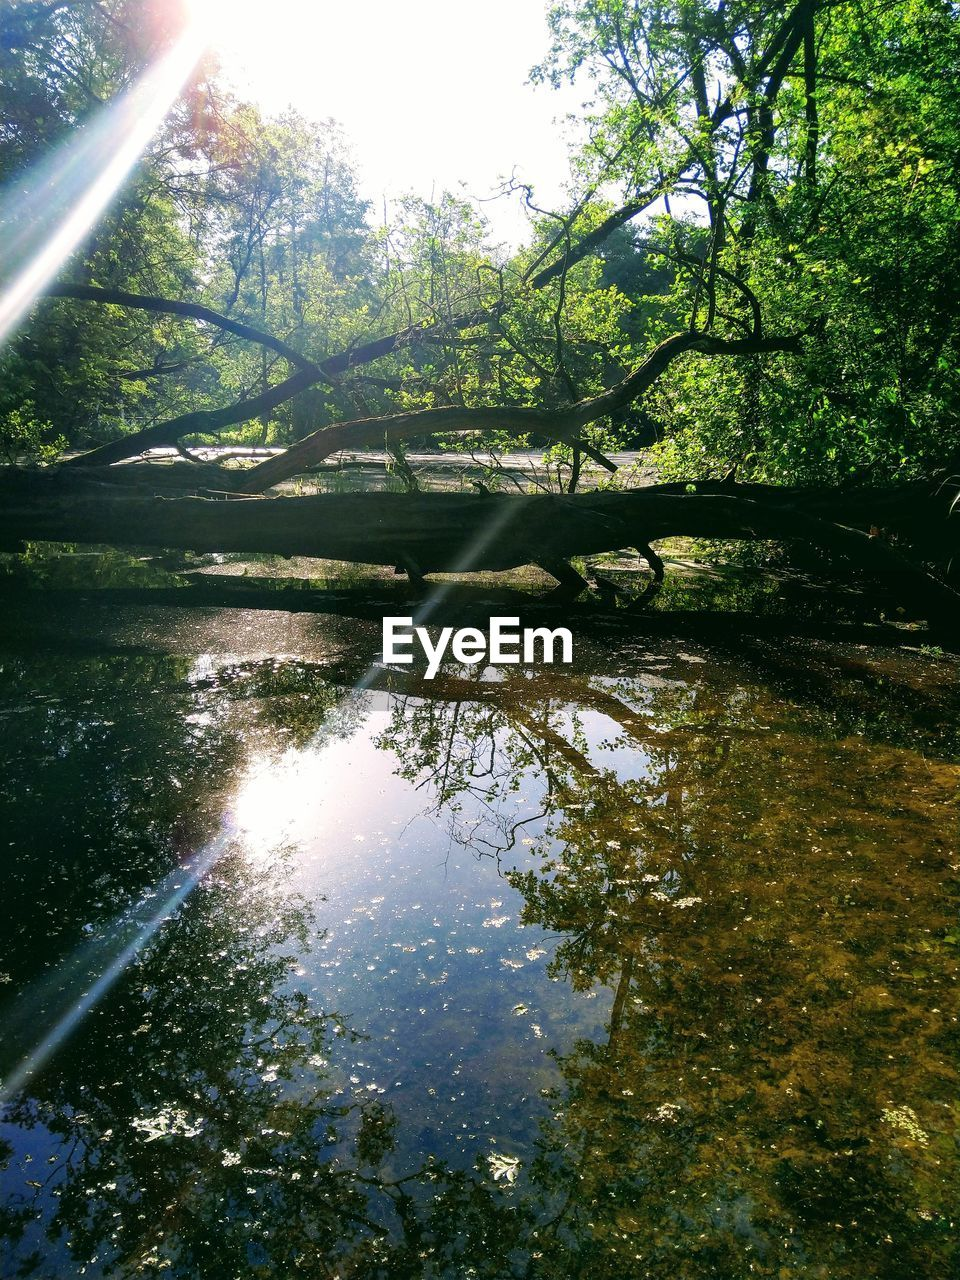 water, tree, reflection, plant, tranquility, beauty in nature, lake, nature, tranquil scene, no people, growth, forest, sky, day, scenics - nature, sunlight, land, outdoors, non-urban scene, lens flare